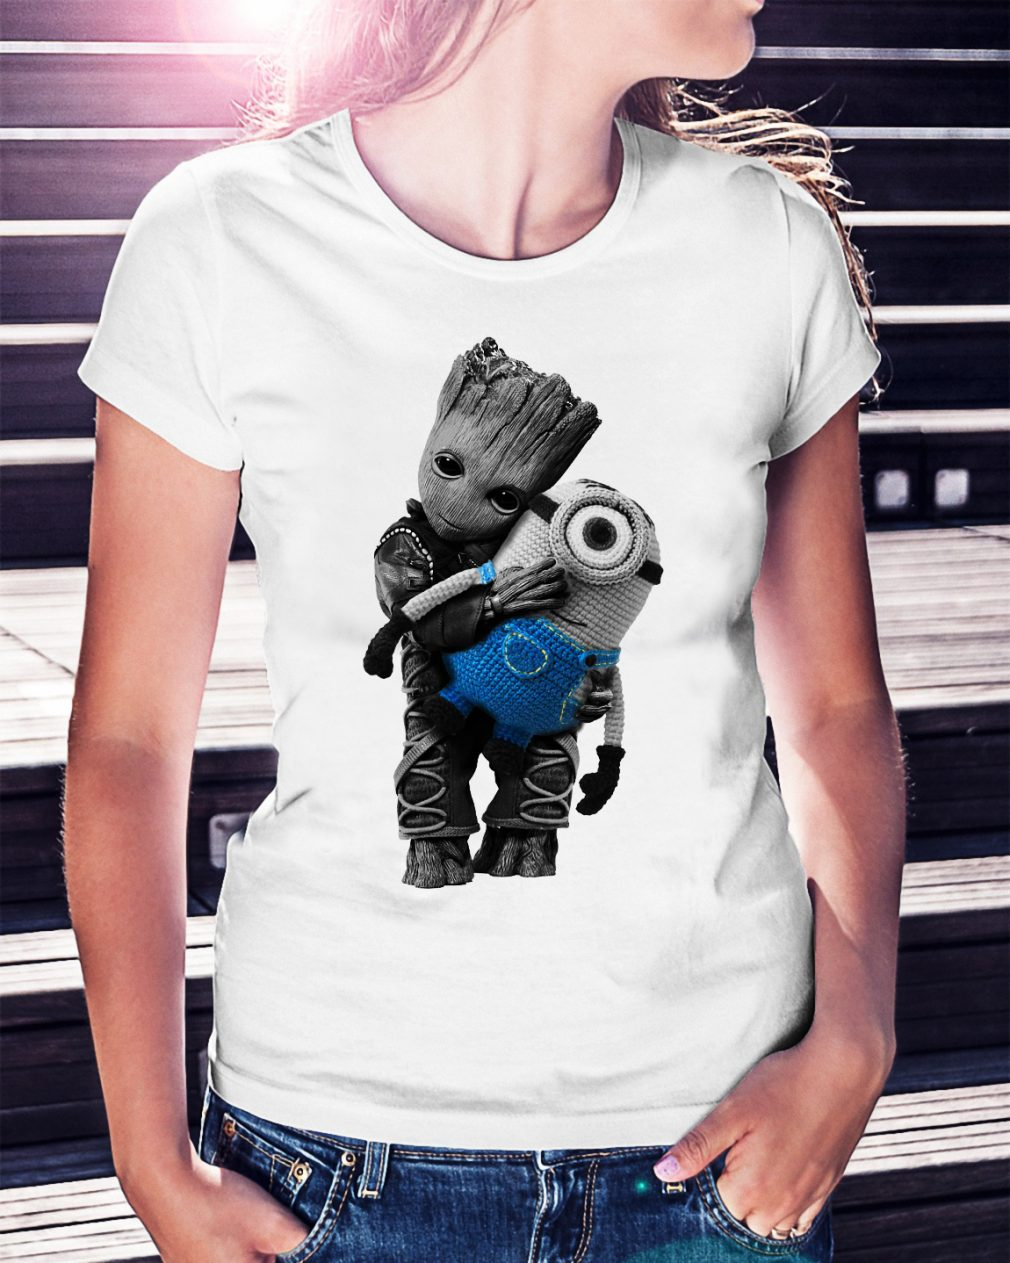 Baby Groot hugging Minion shirt